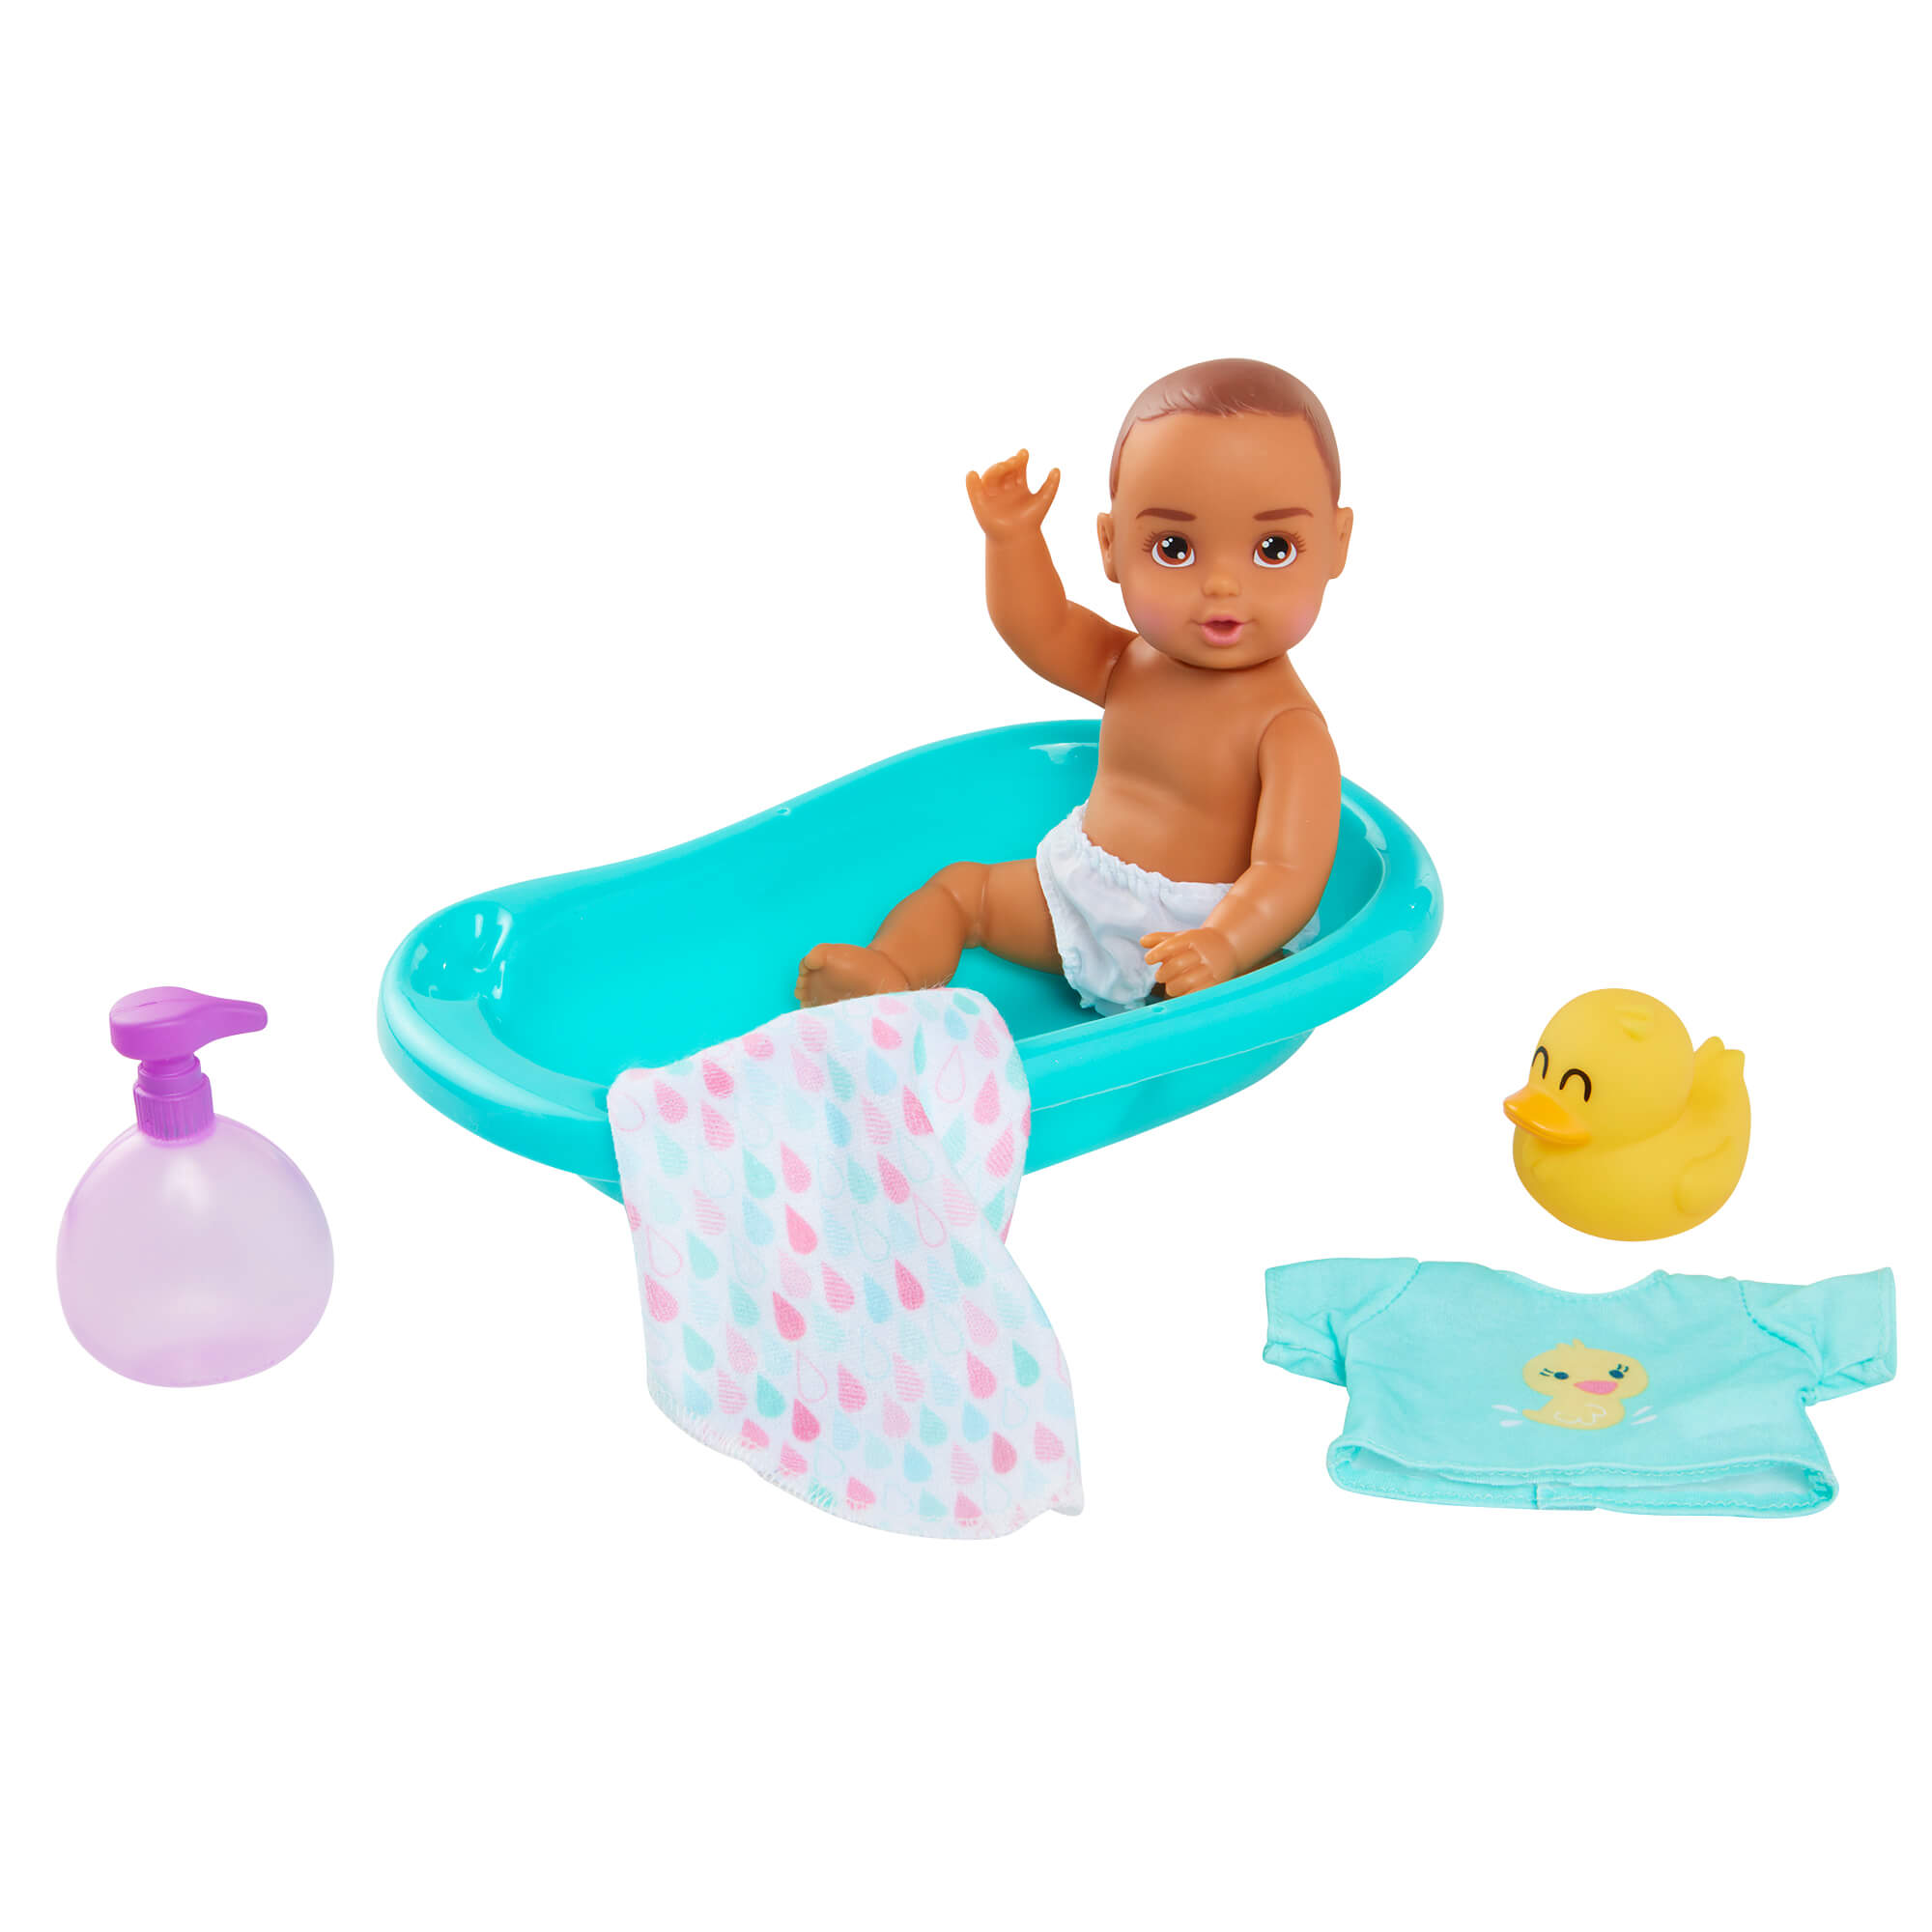 Perfectly Cute Baby My Lil' Baby Bath Time Playset